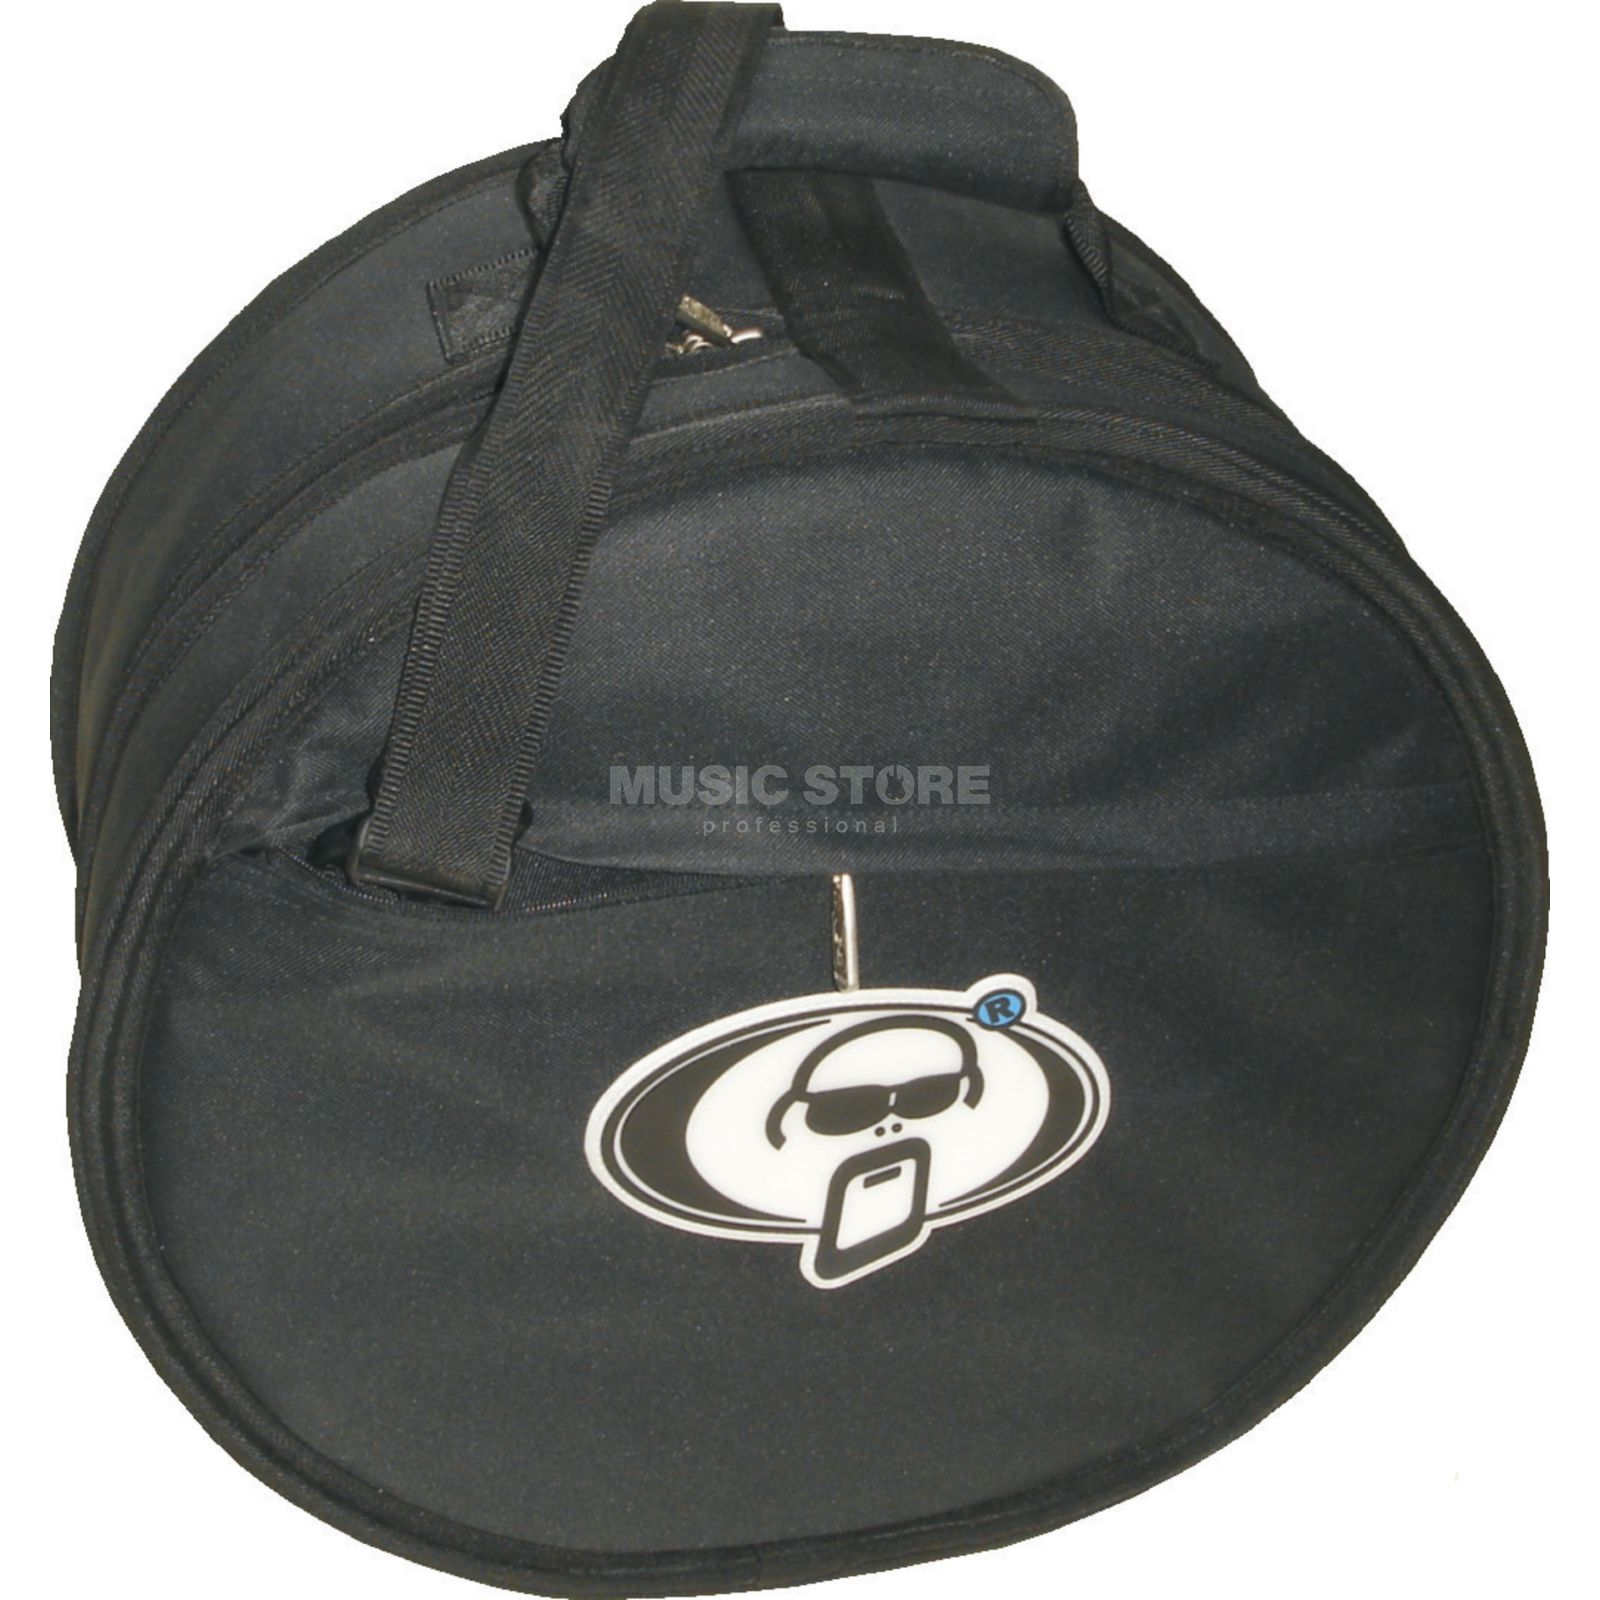 "Protection Racket Snare Bag 3008CS, 12""x7"", w/Shoulder Strap Produktbillede"